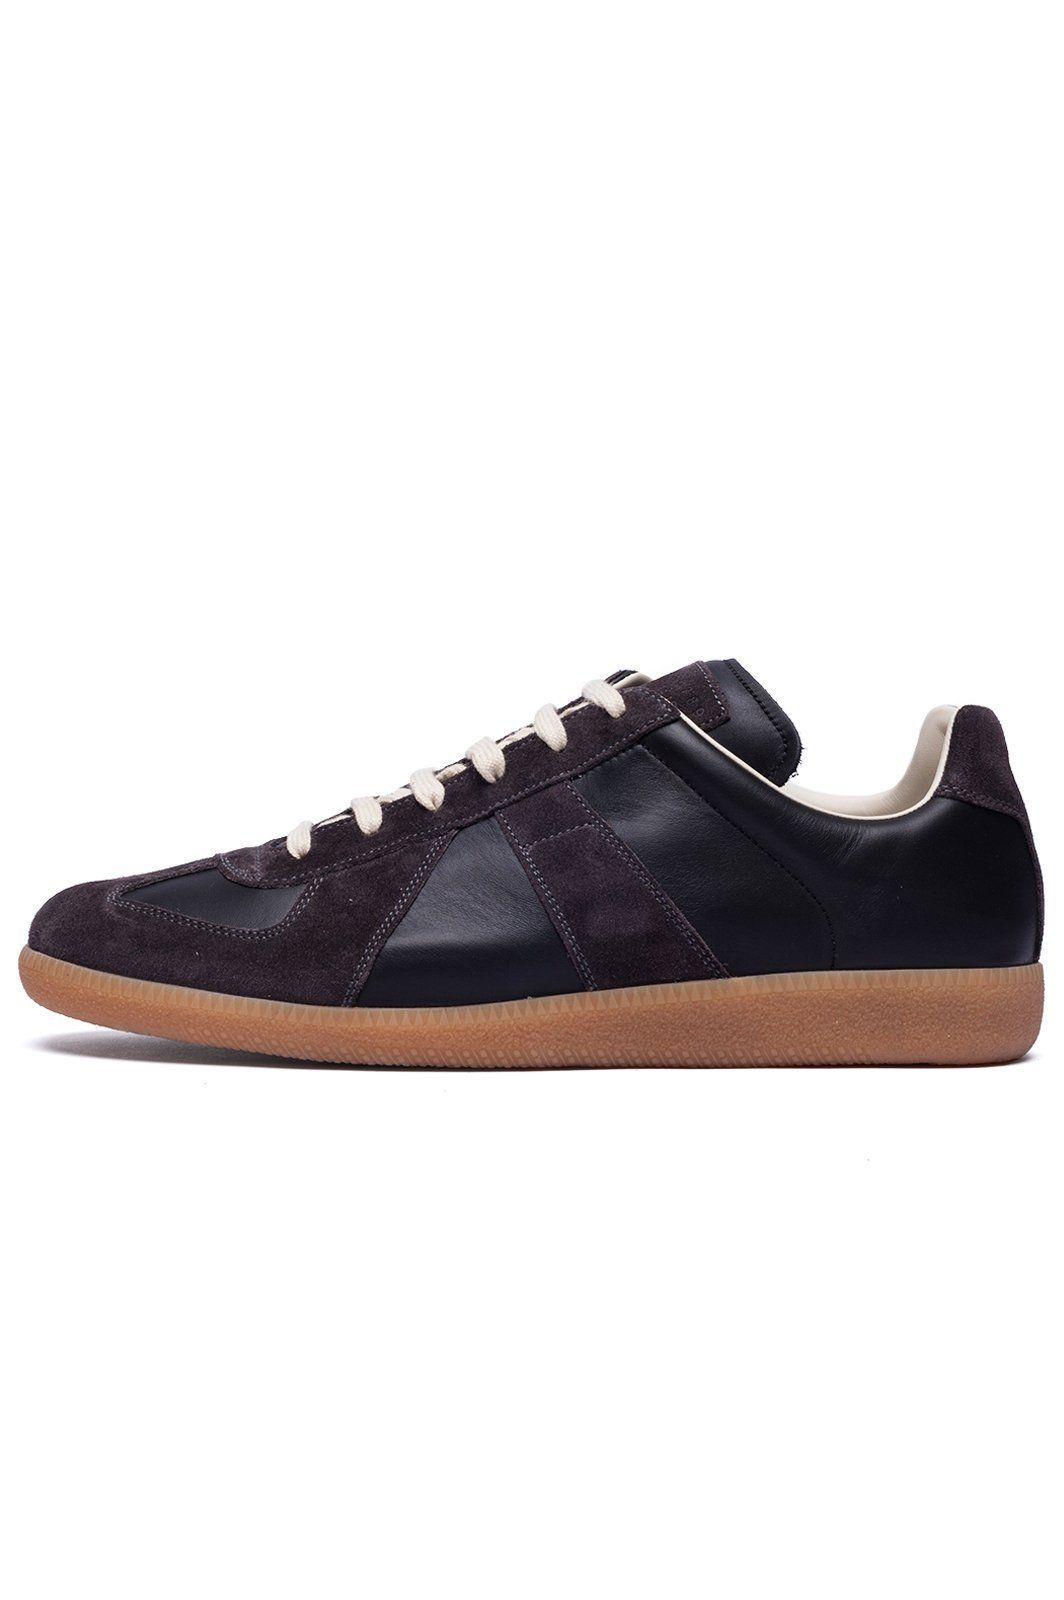 b7094de9216 Maison Margiela's iconic 'Replica' sneakers in suede and calfskin ...